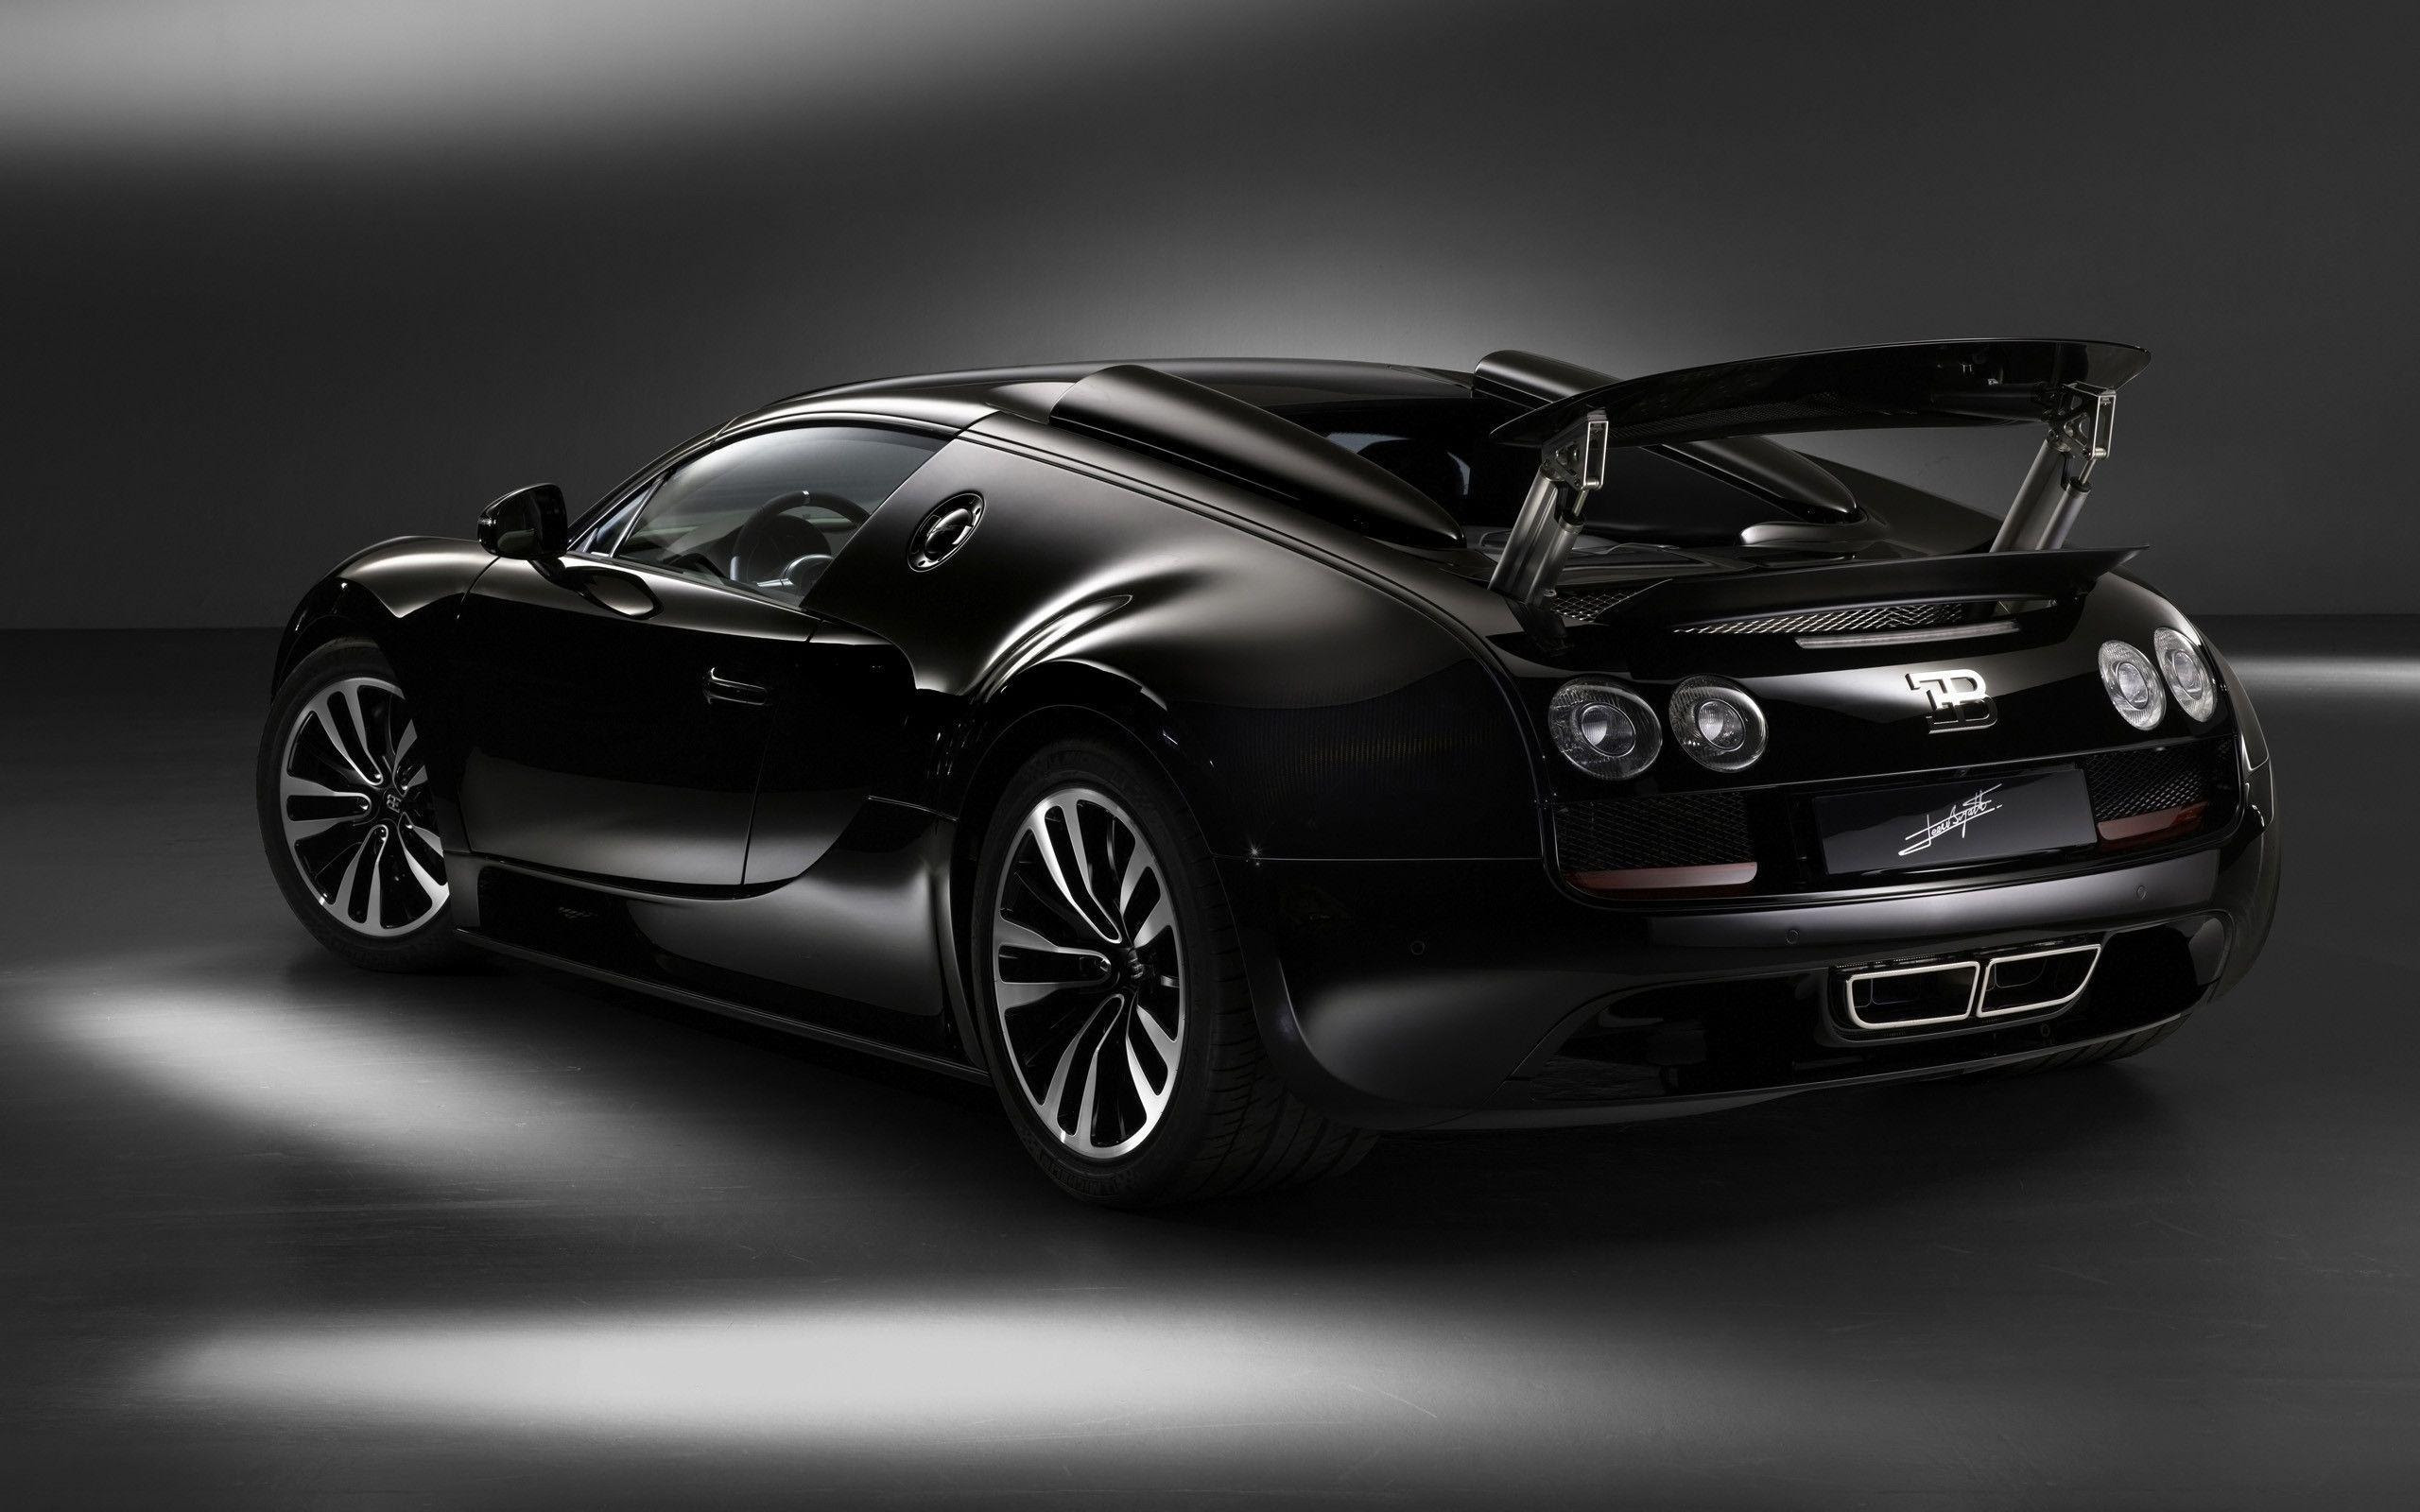 Bugatti Veyron HD Wallpapers  Wallpaper Cave